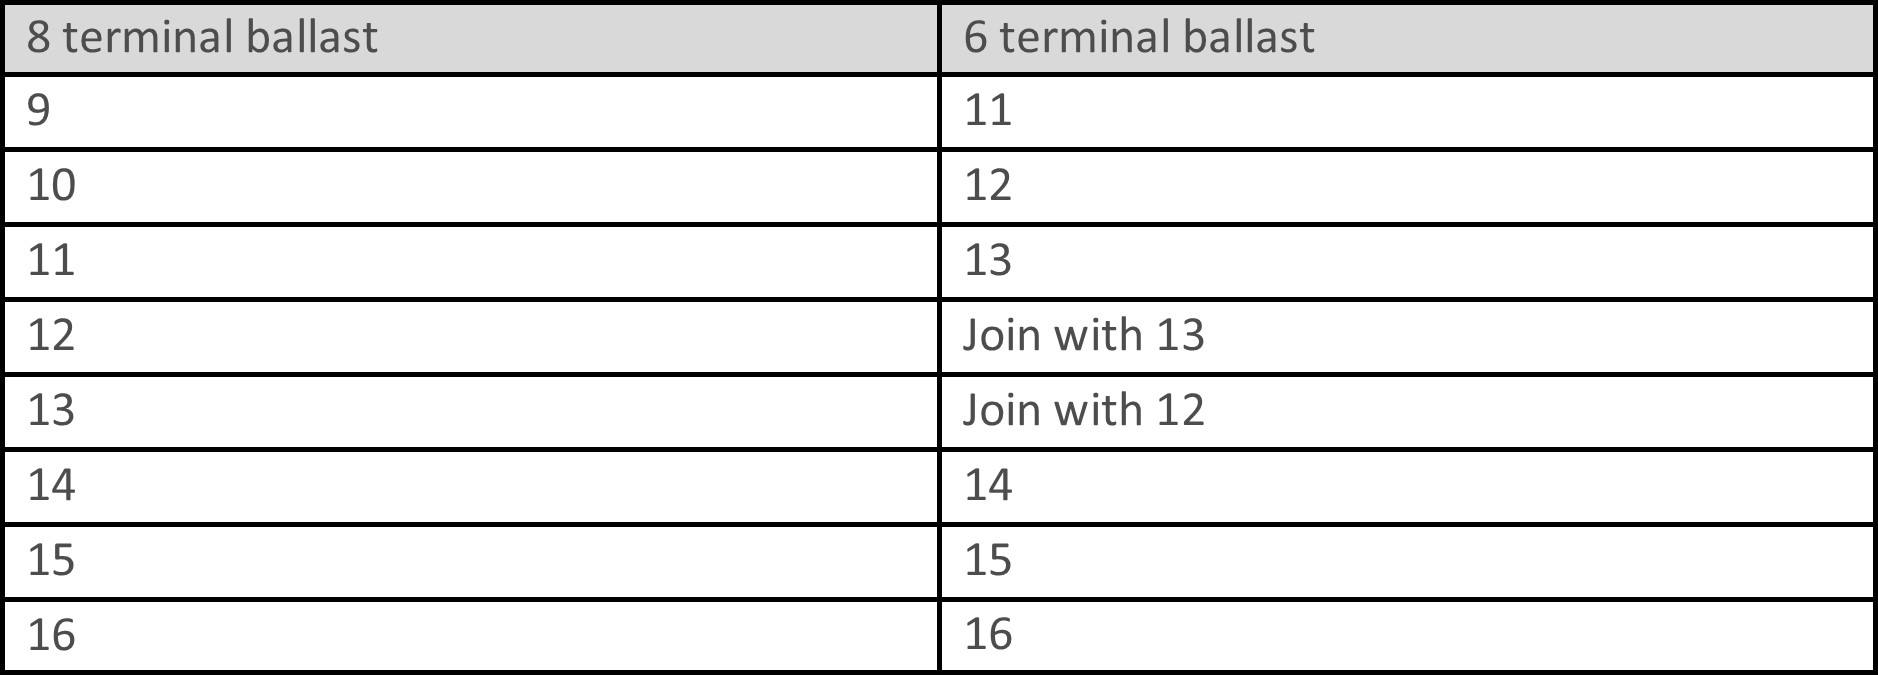 Wiring A Ballast With Fewer Terminals Rlt Onsite Internal Diagram Table 2